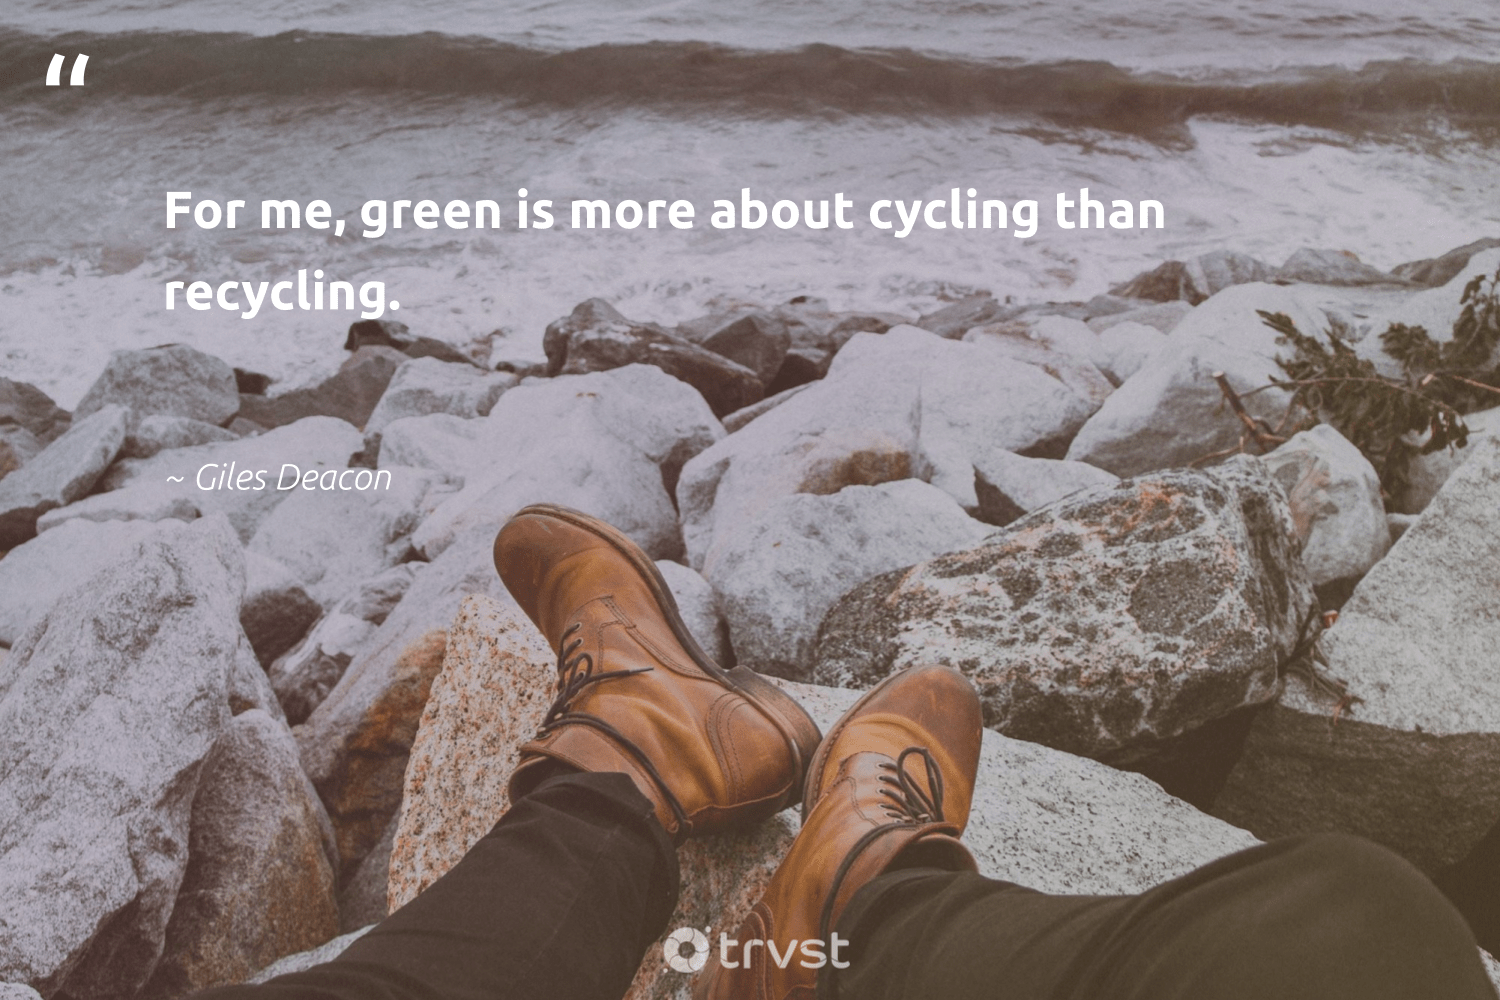 """""""For me, green is more about cycling than recycling.""""  - Giles Deacon #trvst #quotes #recycling #green #refuse #loveourplanet #trash #impact #recycled #biodegradable #planetearthfirst #dosomething"""